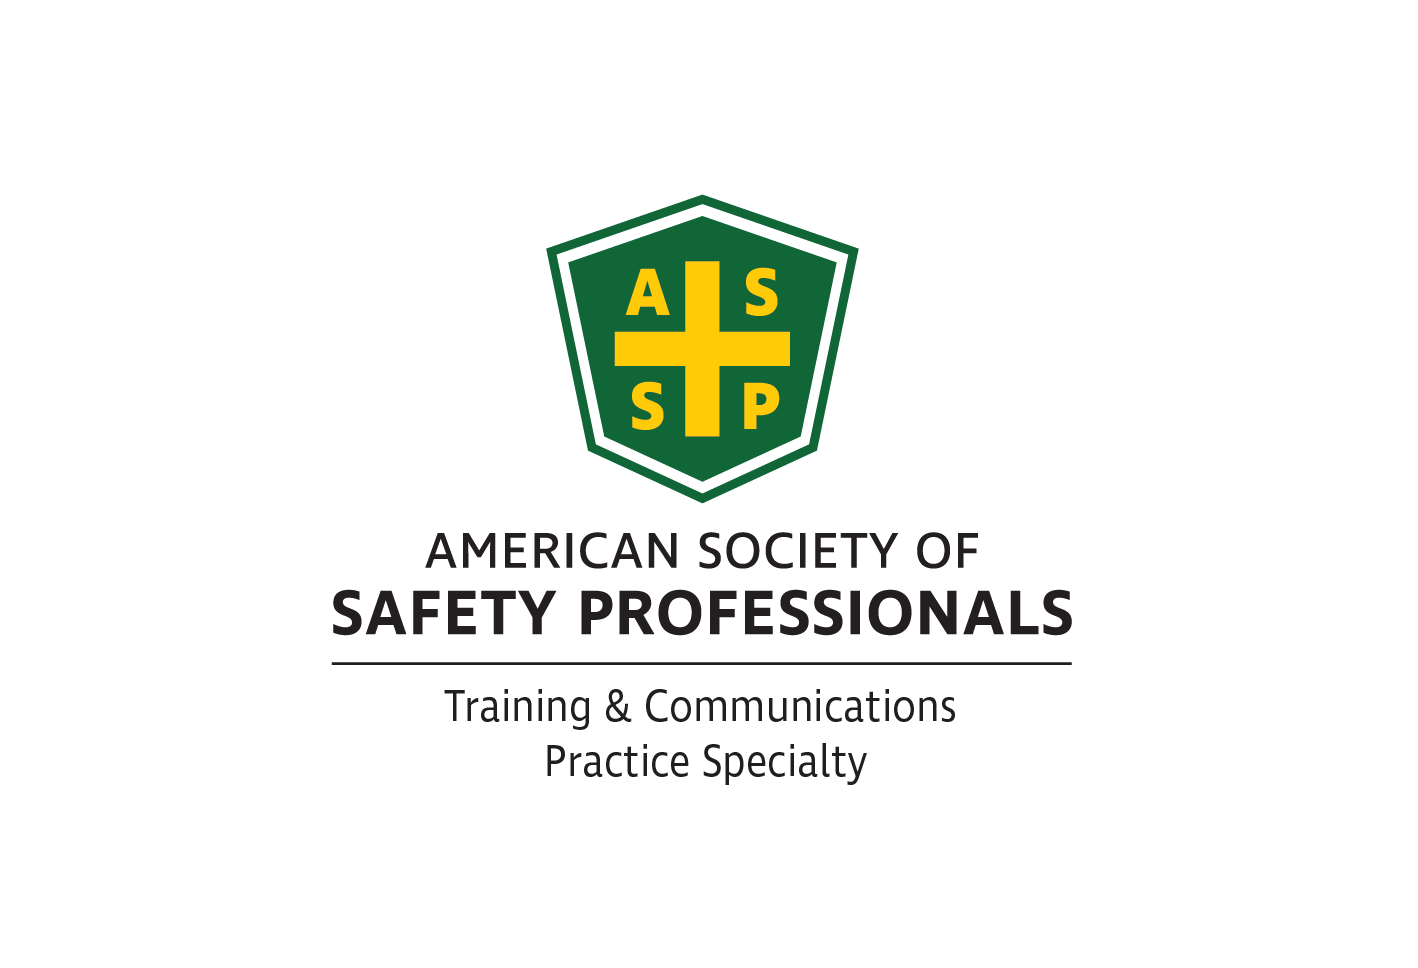 Training & Communications Practice Specialty